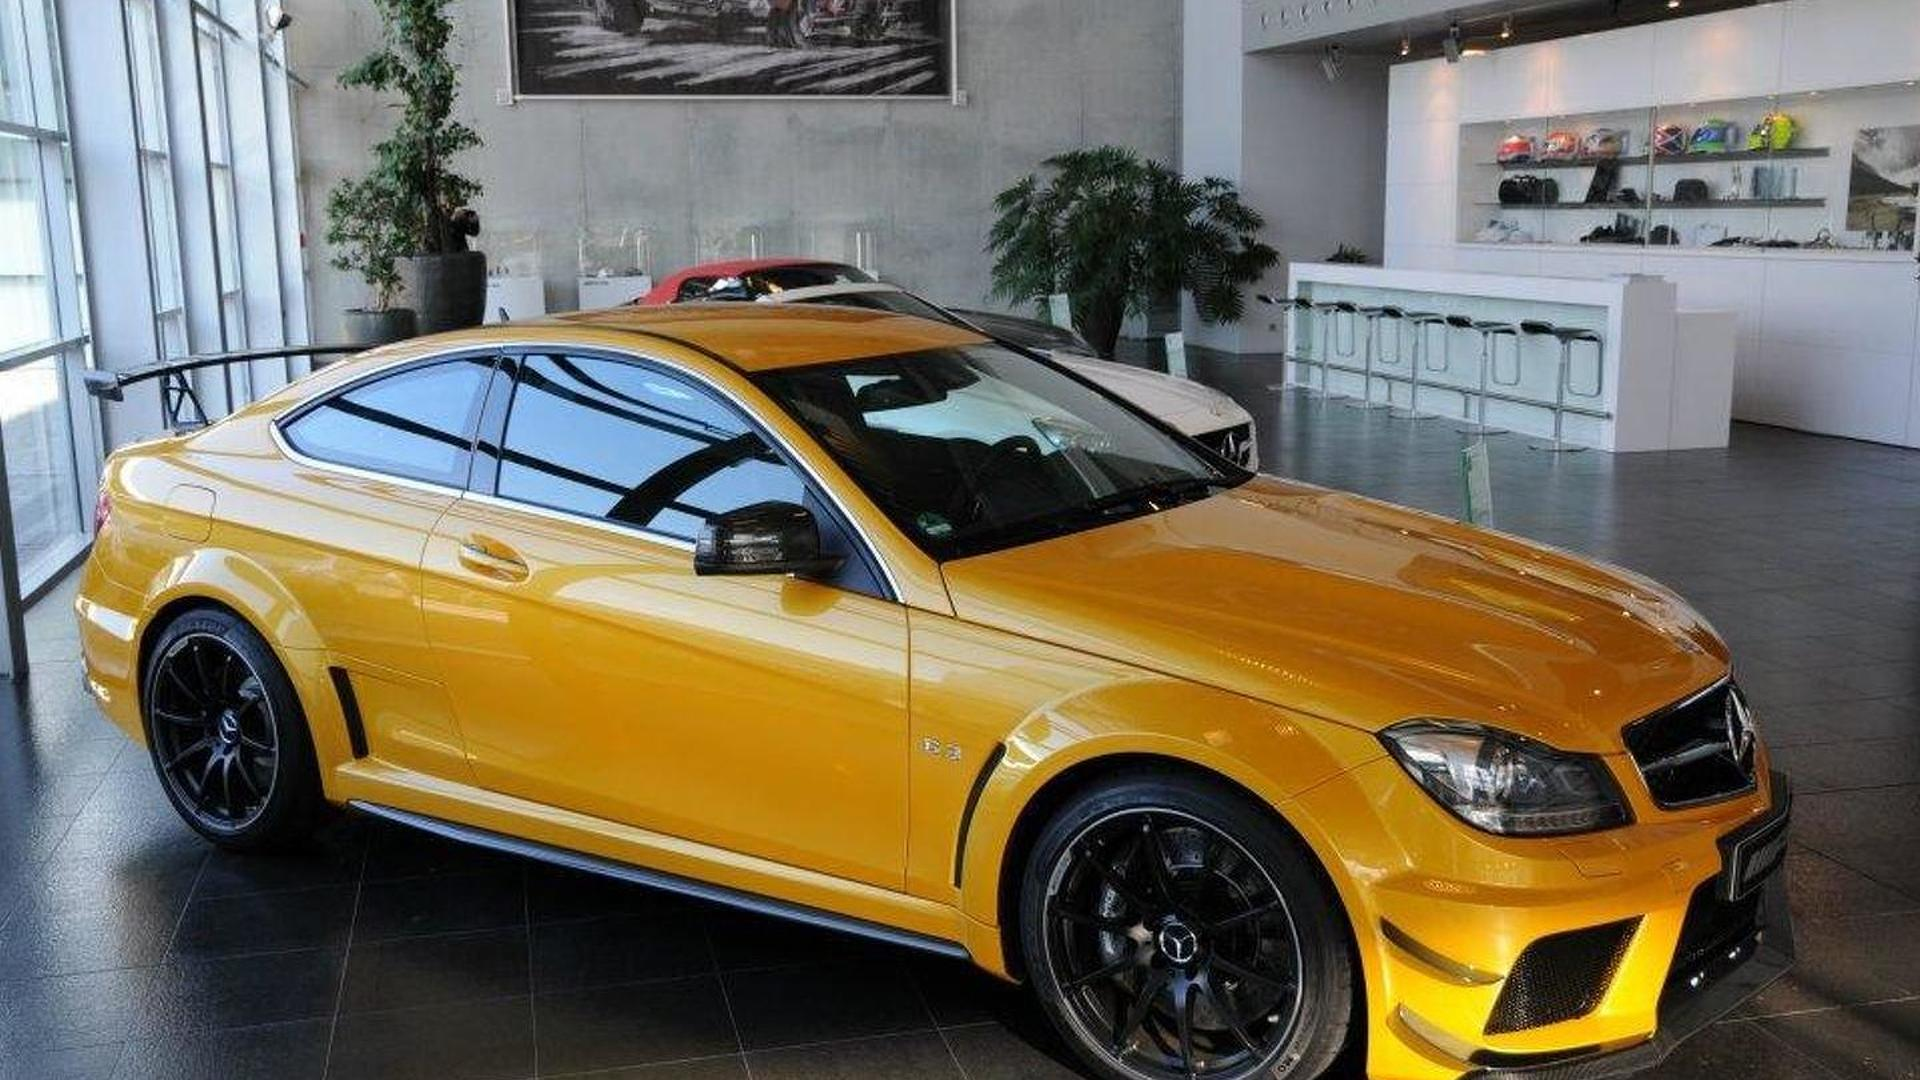 C63 Amg Black Series For Sale >> Solarbeam Colored Mercedes Benz C63 Amg Coupe Black Series